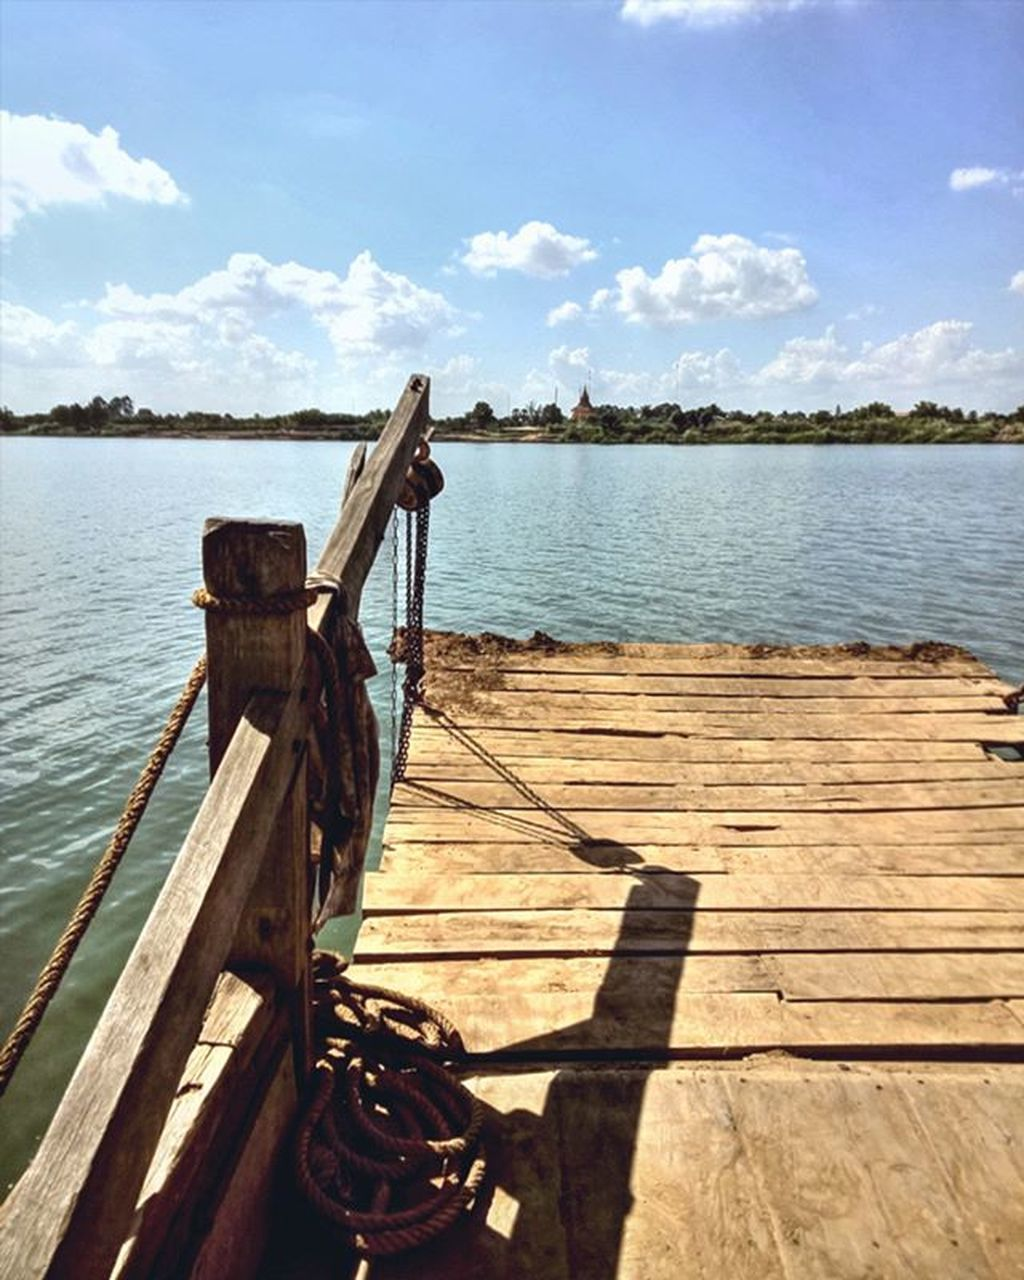 water, wood - material, no people, day, outdoors, sky, tranquility, nautical vessel, lake, nature, cloud - sky, sunlight, scenics, beauty in nature, close-up